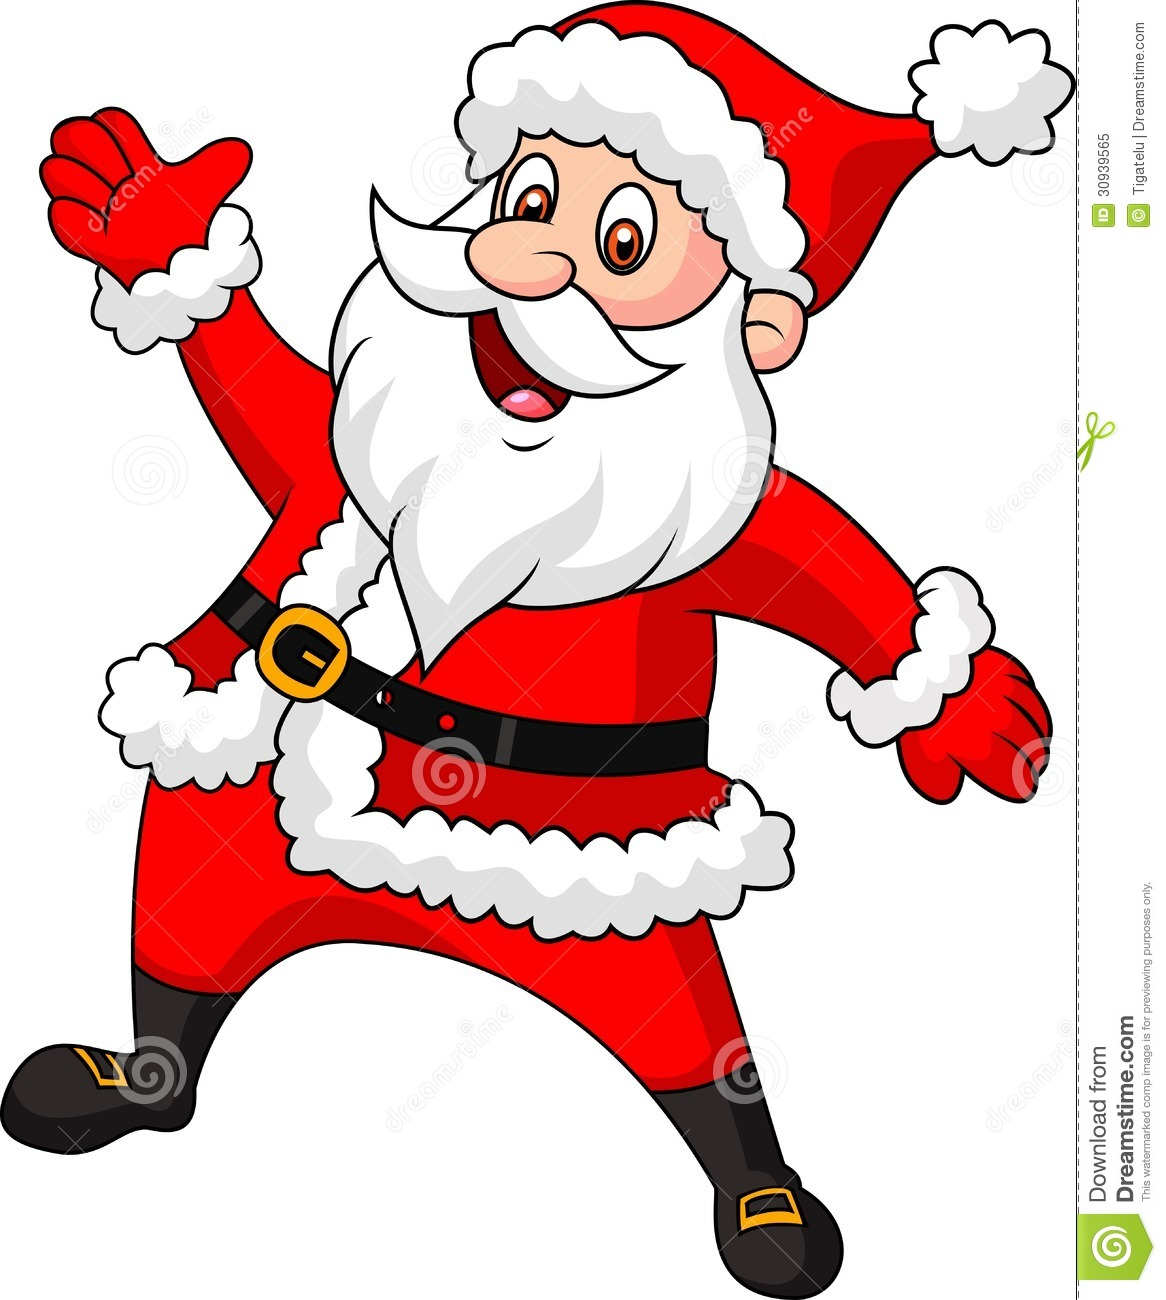 Santa clause cartoon waving hand stock vector